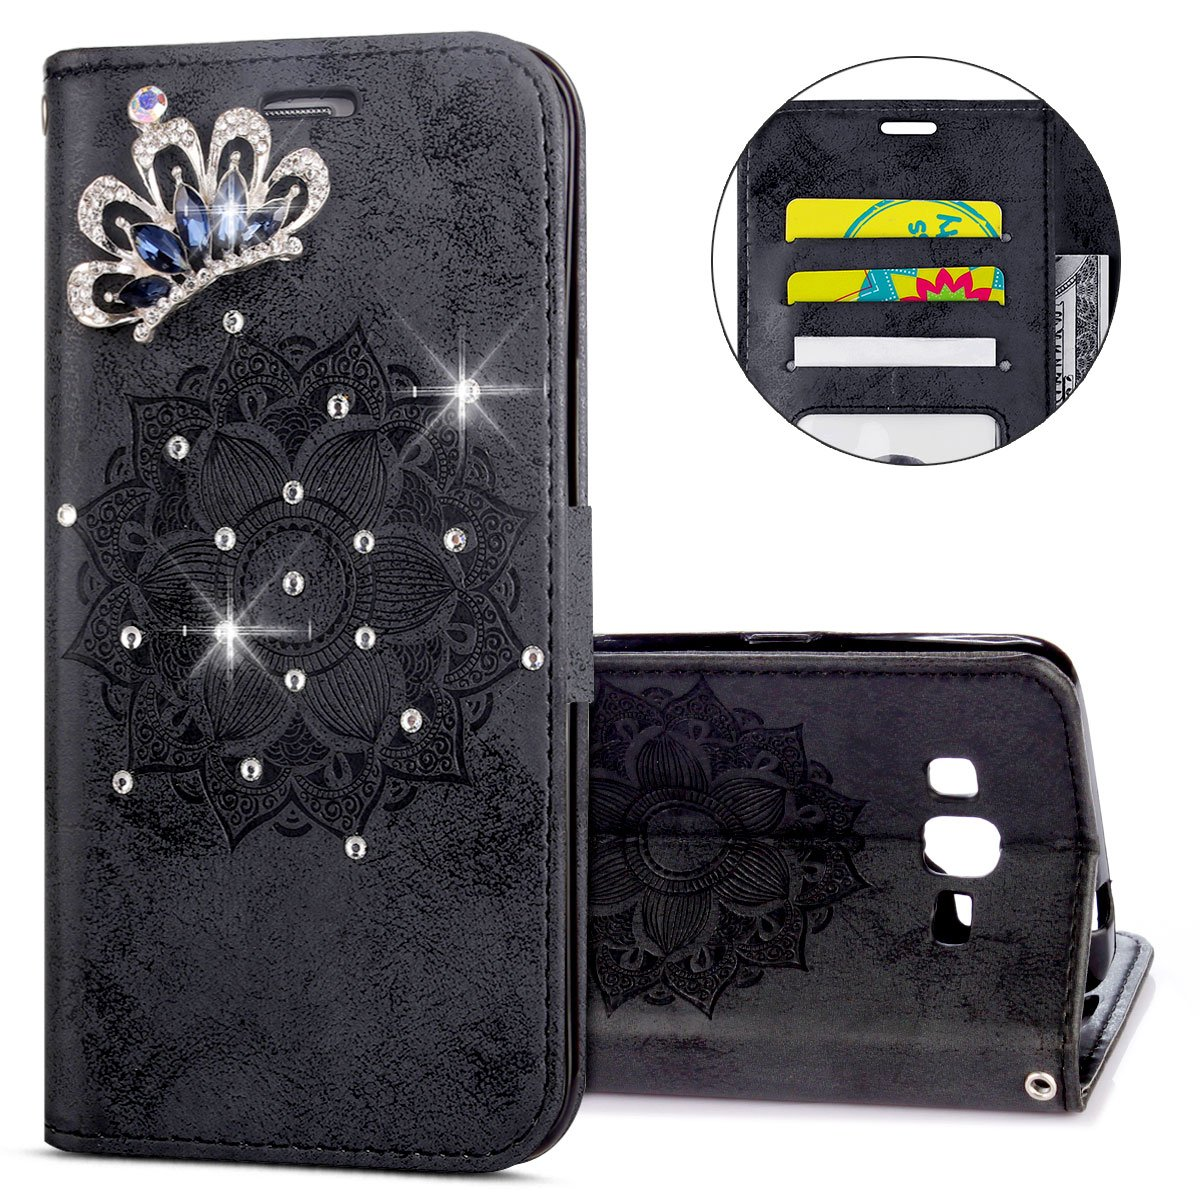 IKASEFU Galaxy G530 Case,3D Clear Crown Rhinestone Diamond Bling Glitter Wallet with Card Holder Emboss Mandala Floral Pu Leather Magnetic Flip Case Protective Cover for Samsung Galaxy G530,Black